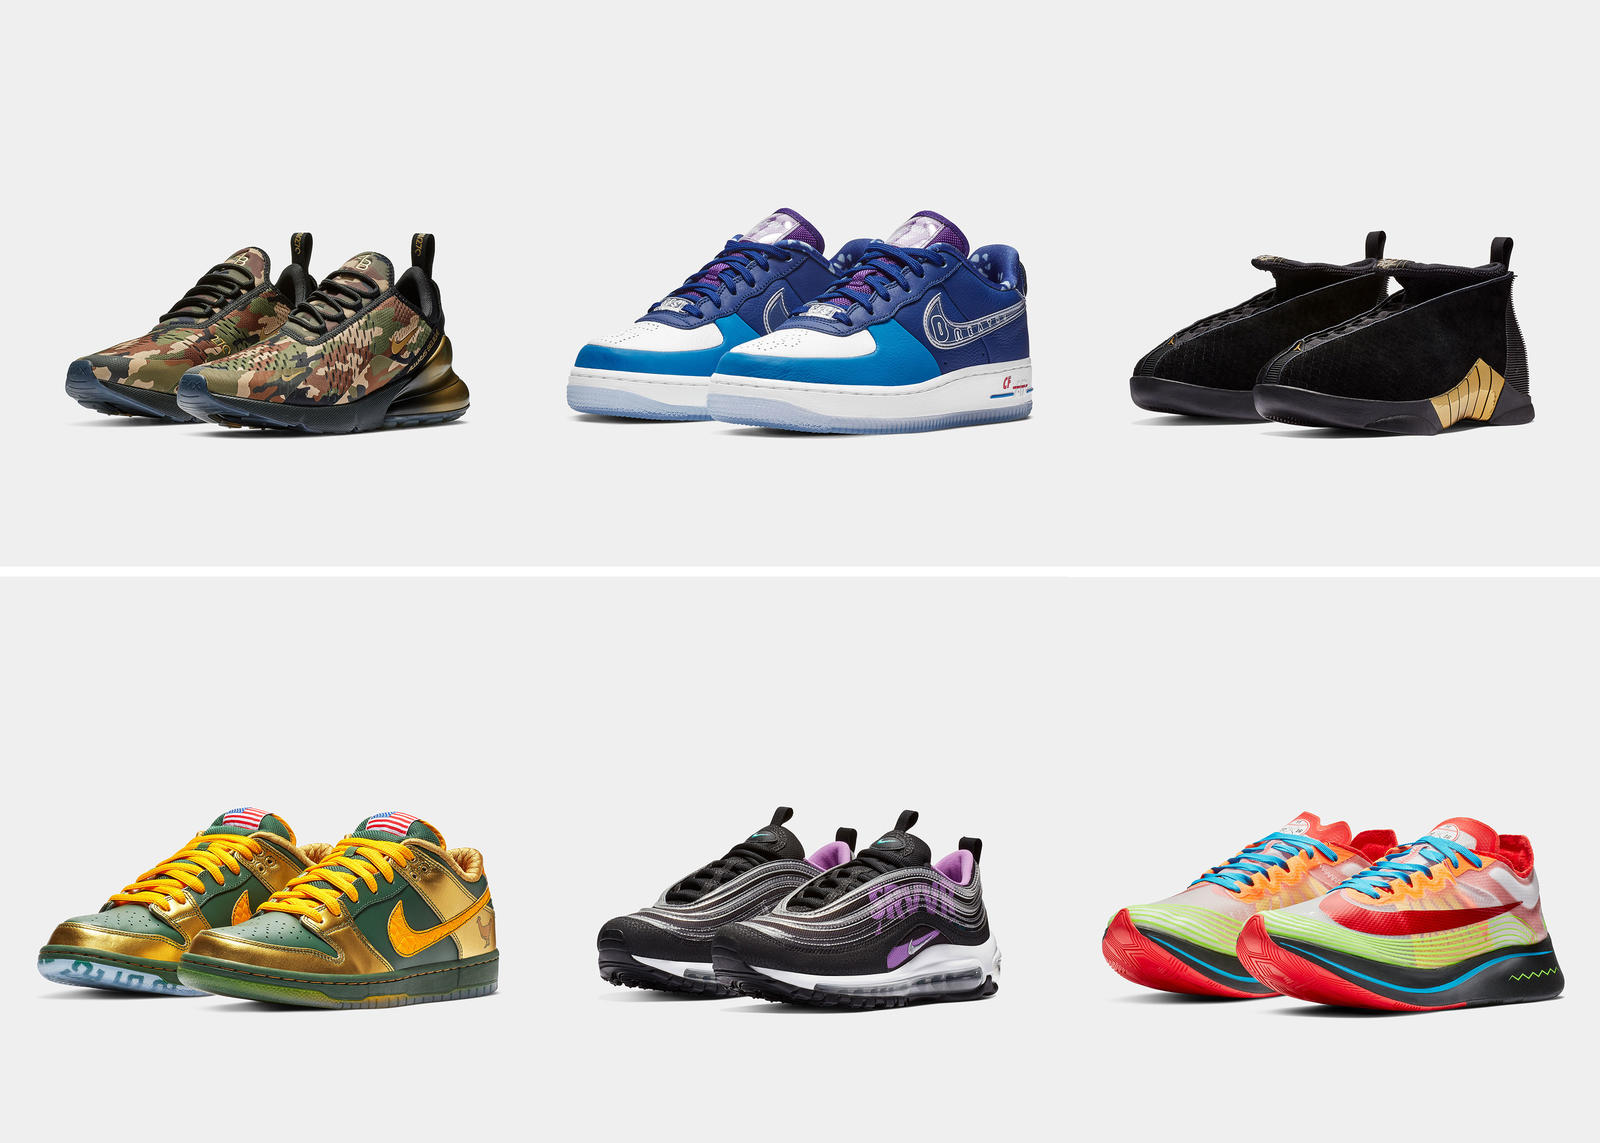 DoernbecherFreestyle_2018_FinalShoes_Group_83516